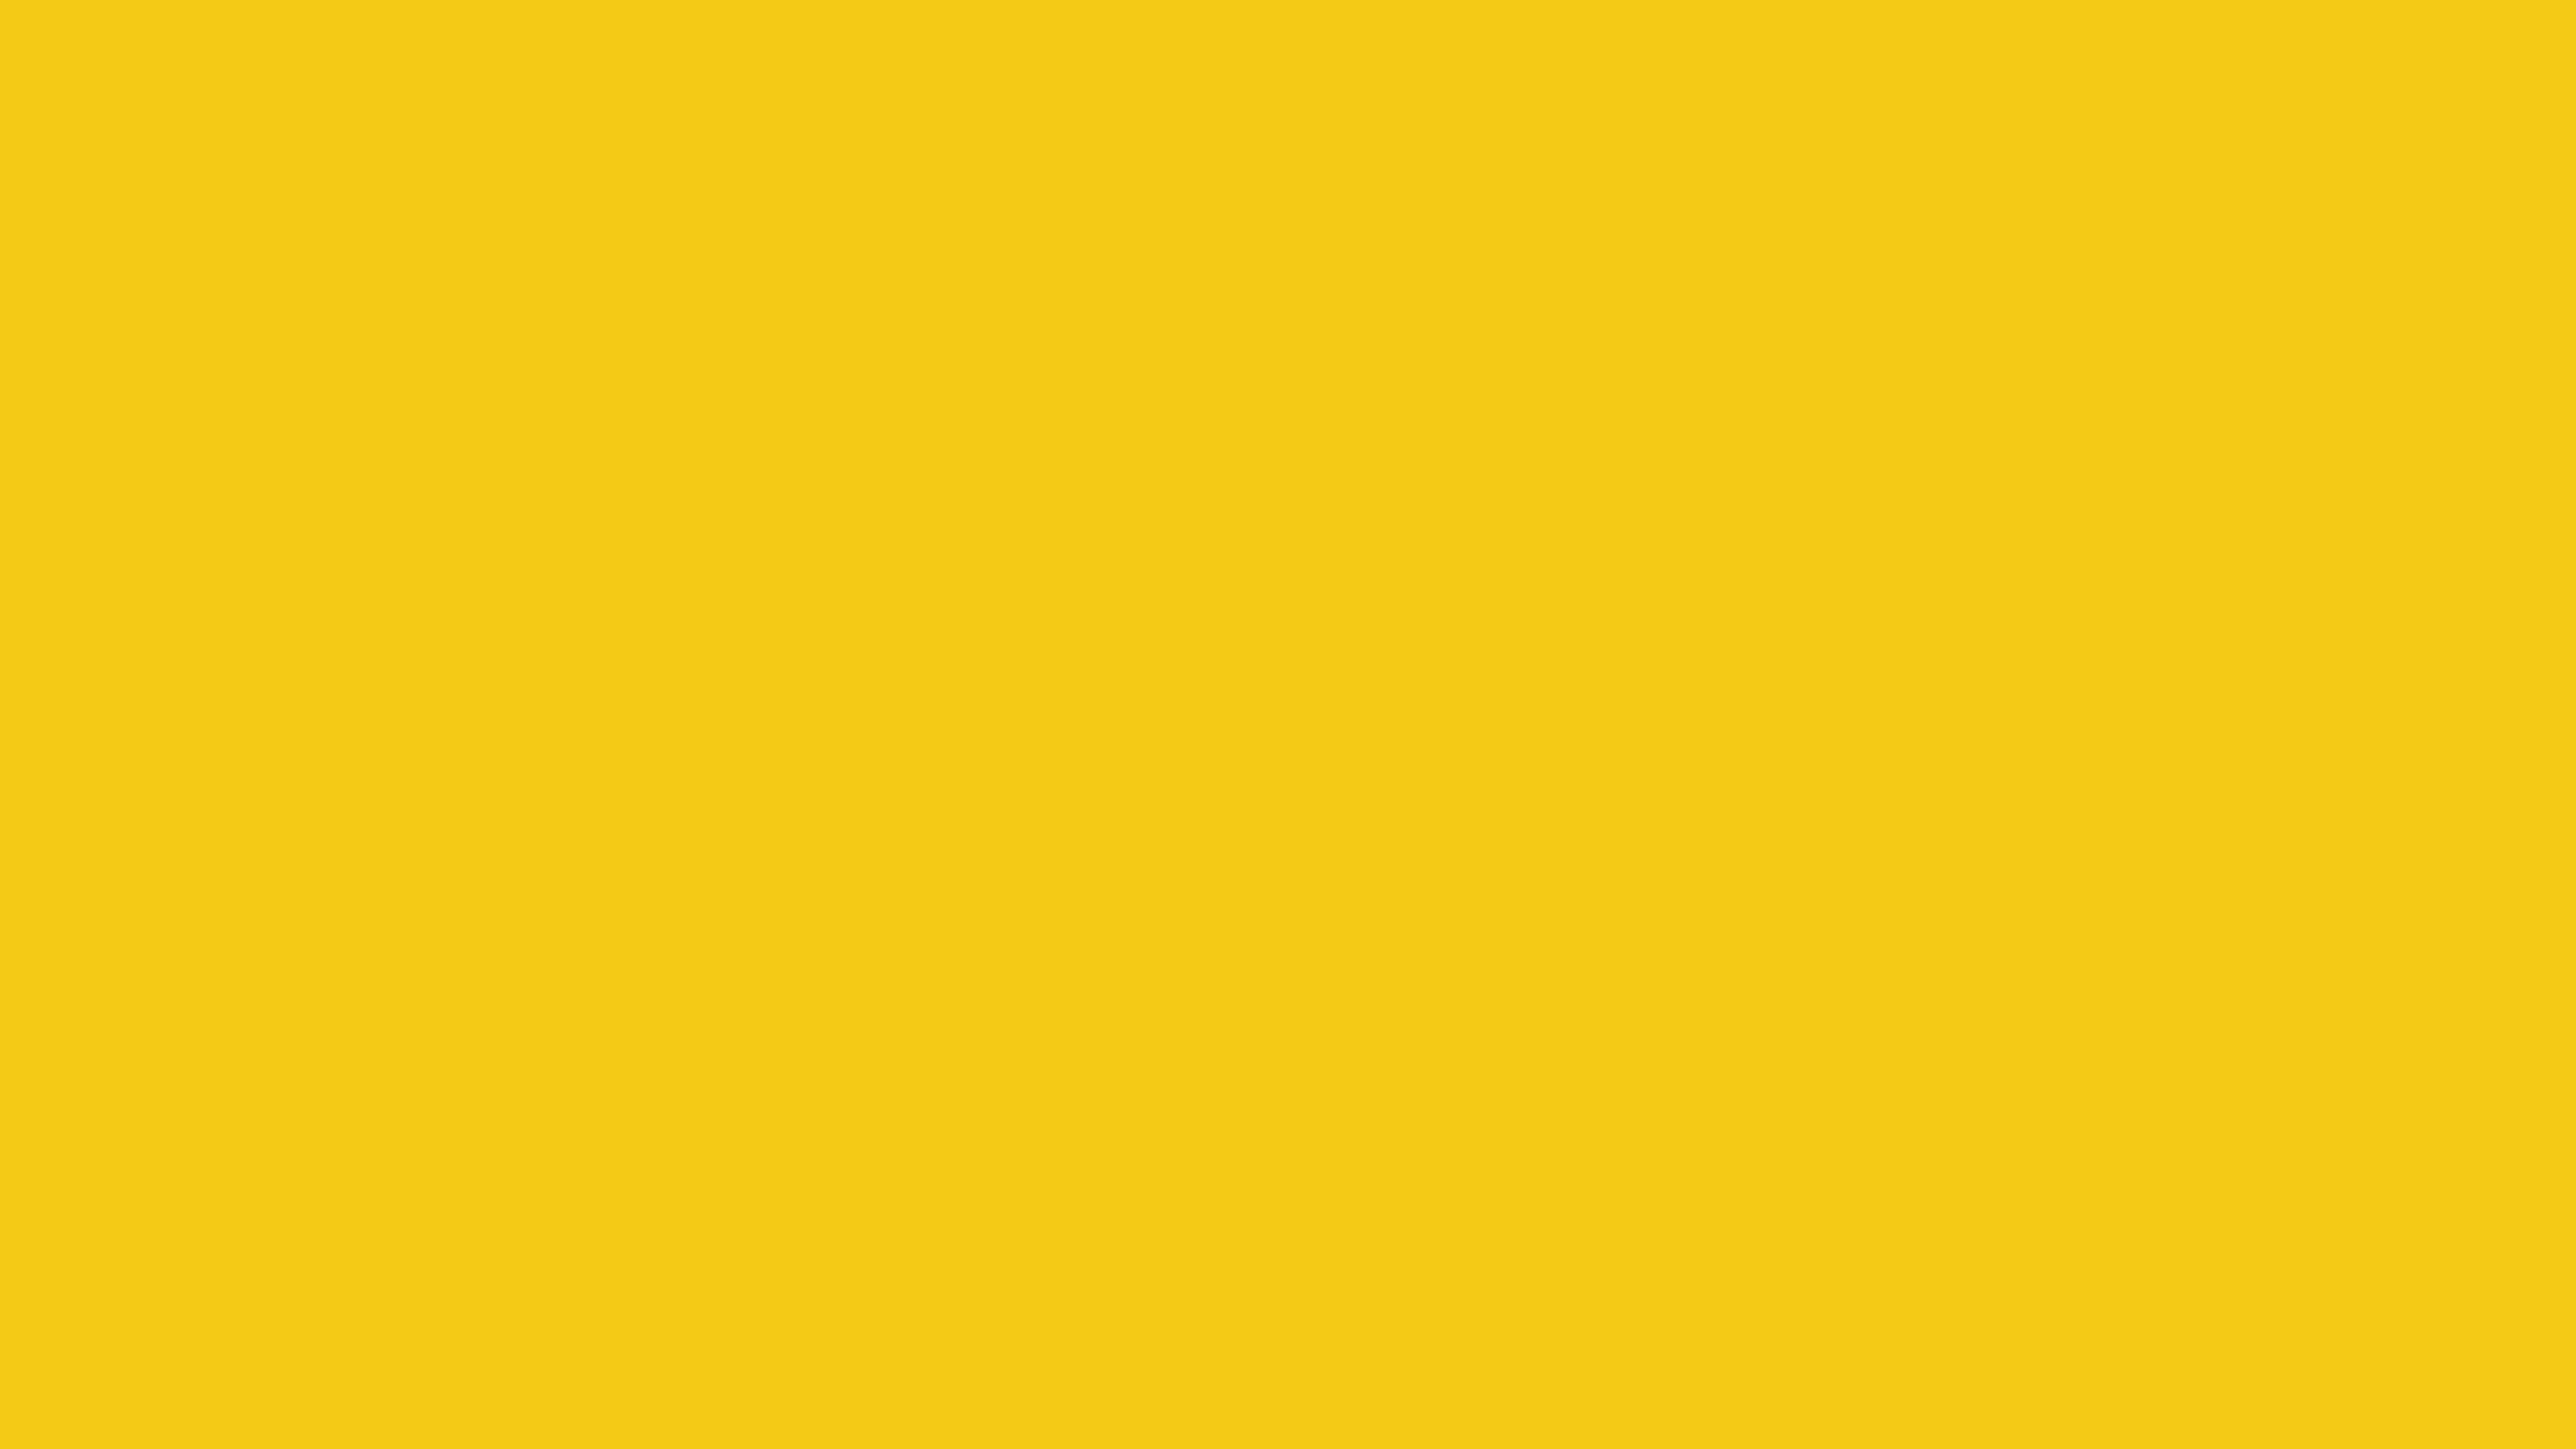 5120x2880 Jonquil Solid Color Background